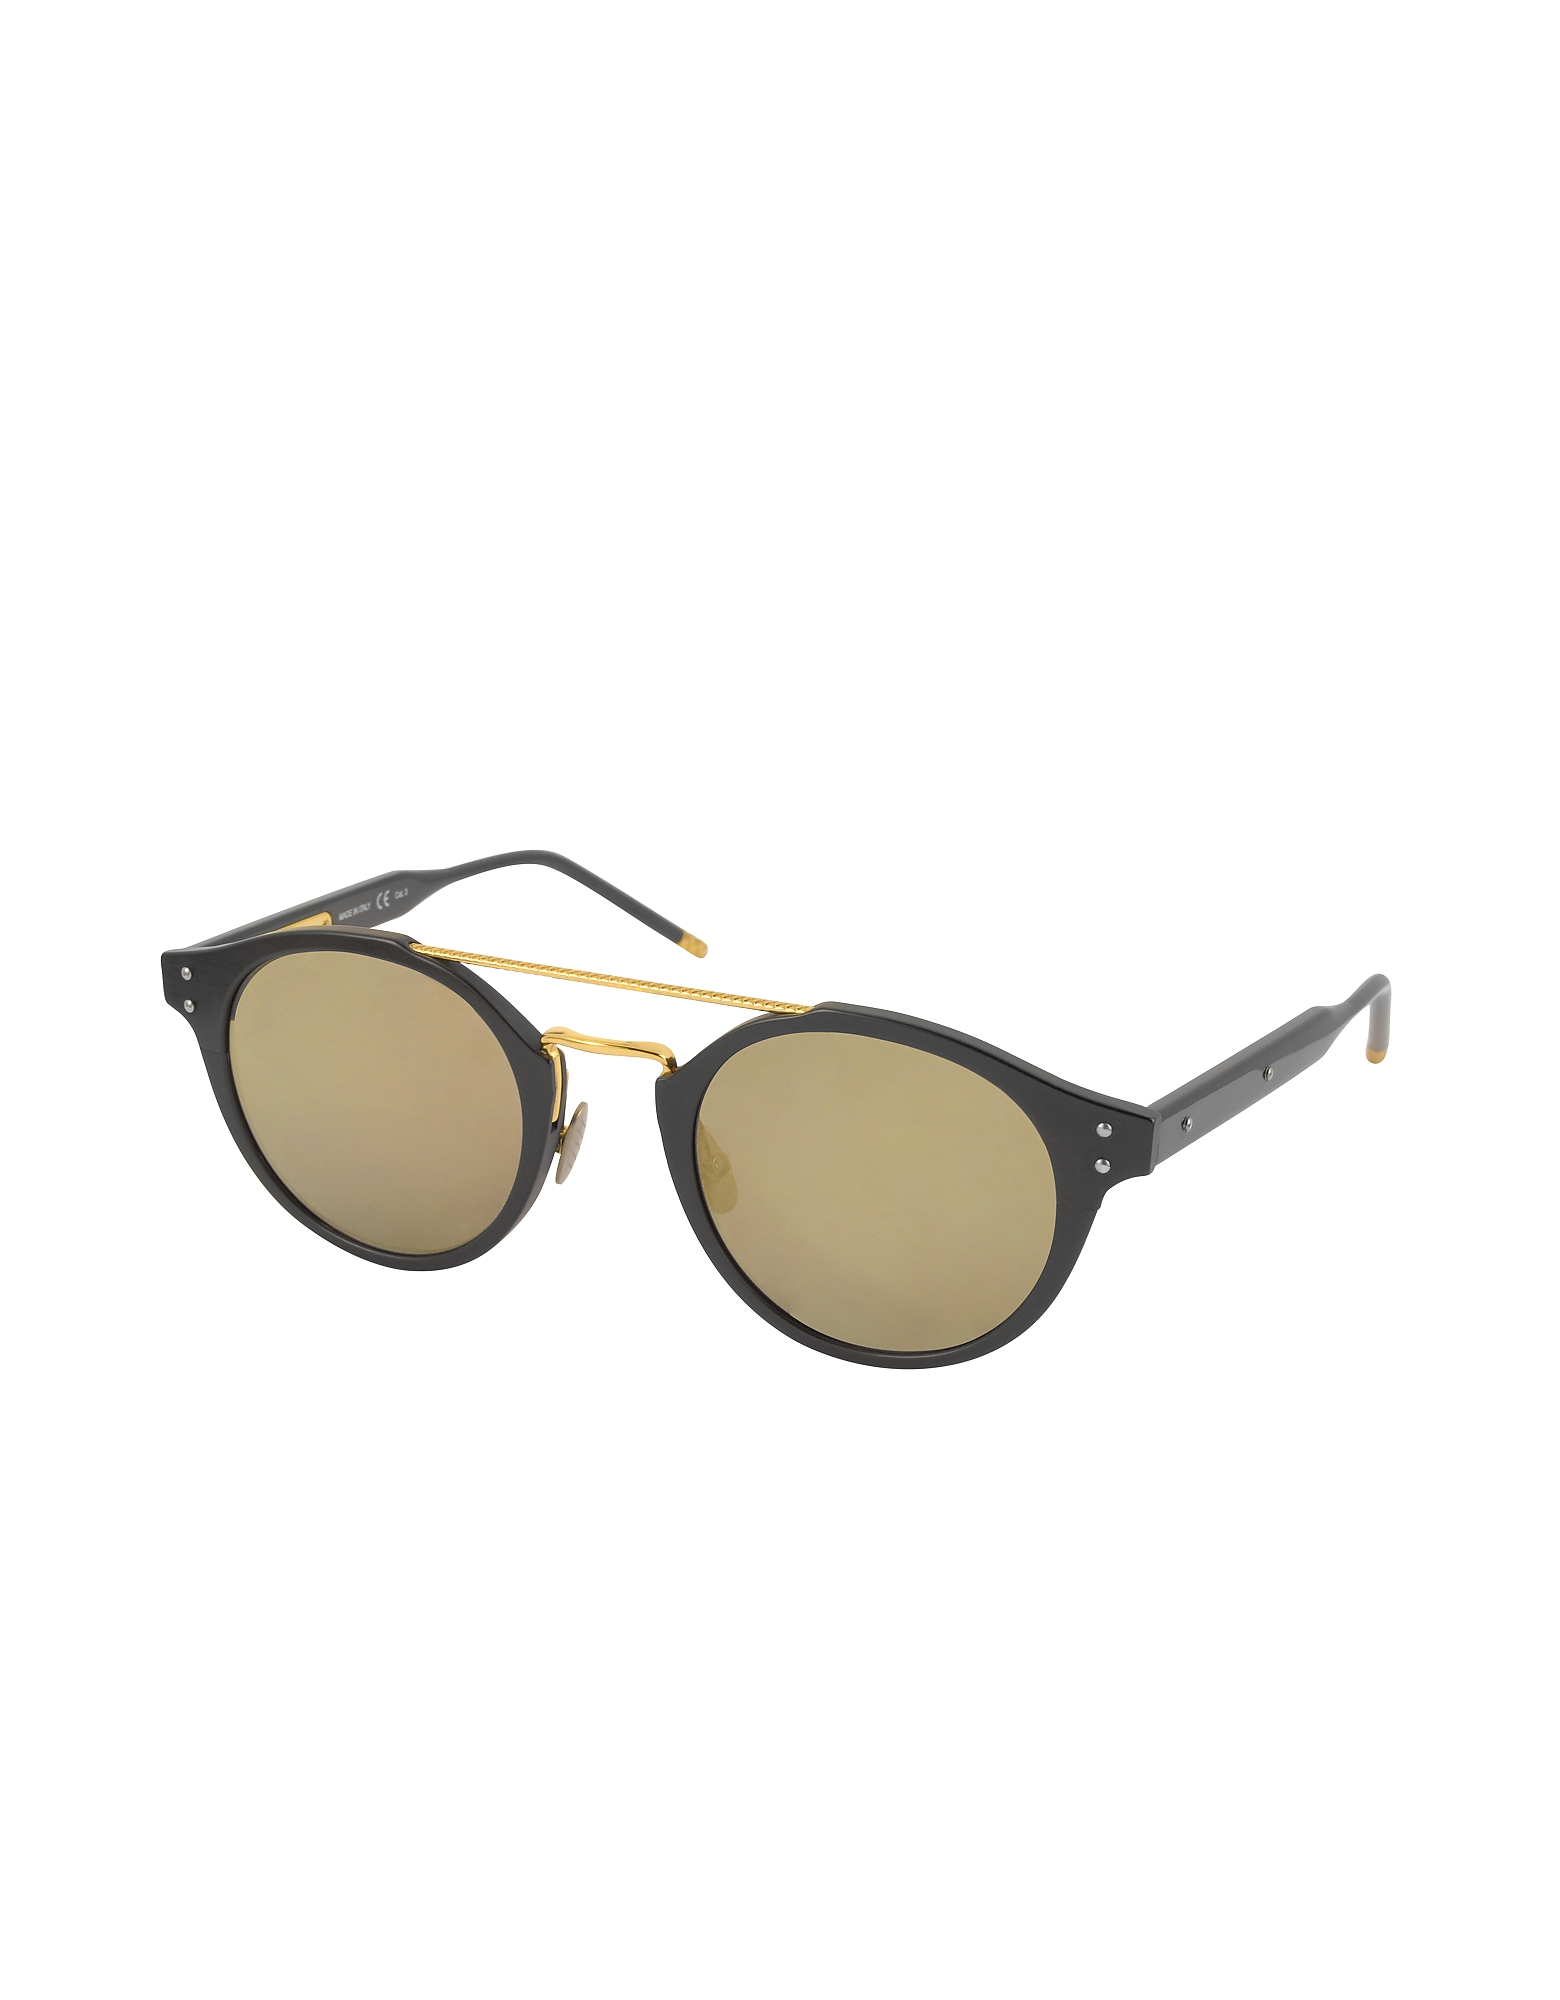 BV0078S Round Acetate and Metal Frame Unisex Sunglasses от Forzieri.com INT